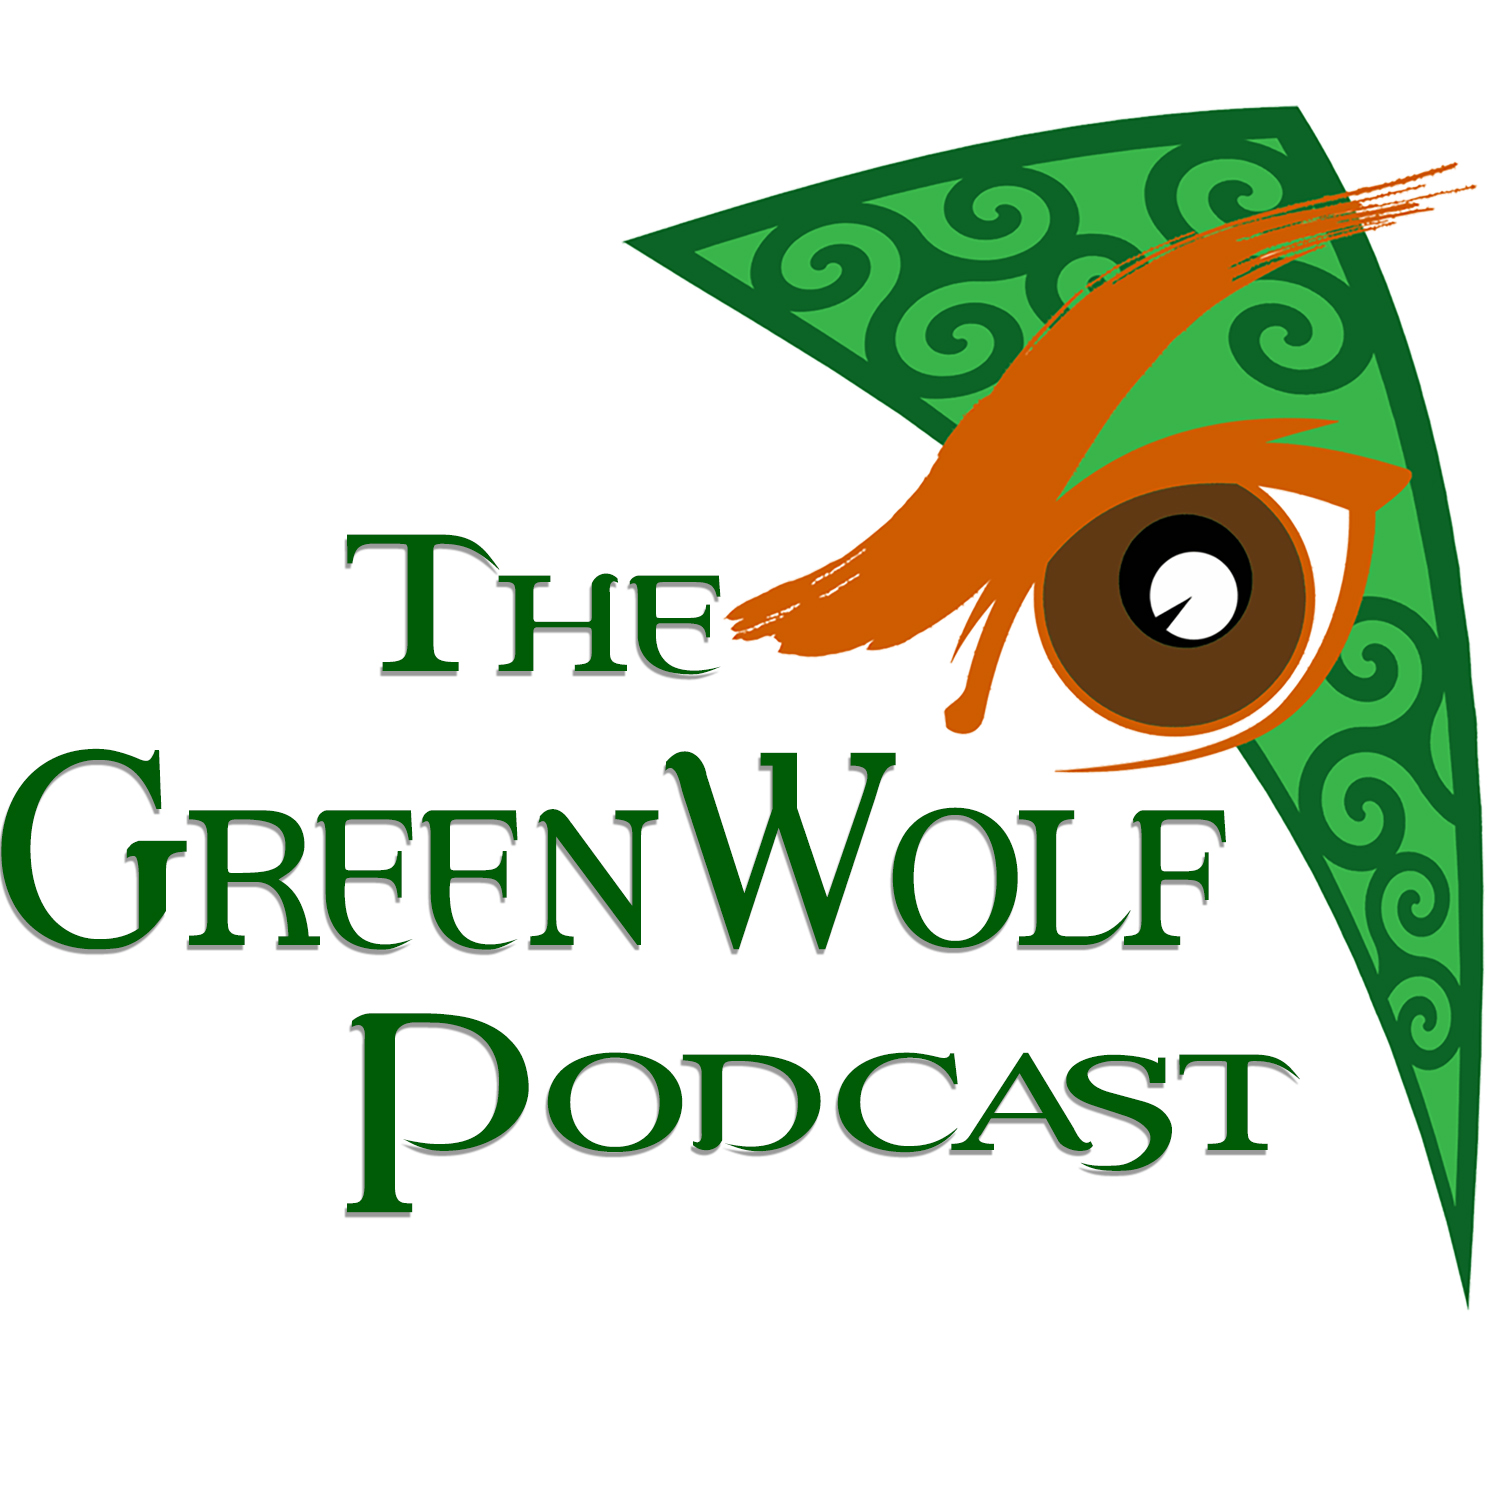 The GreenWolf Podcast